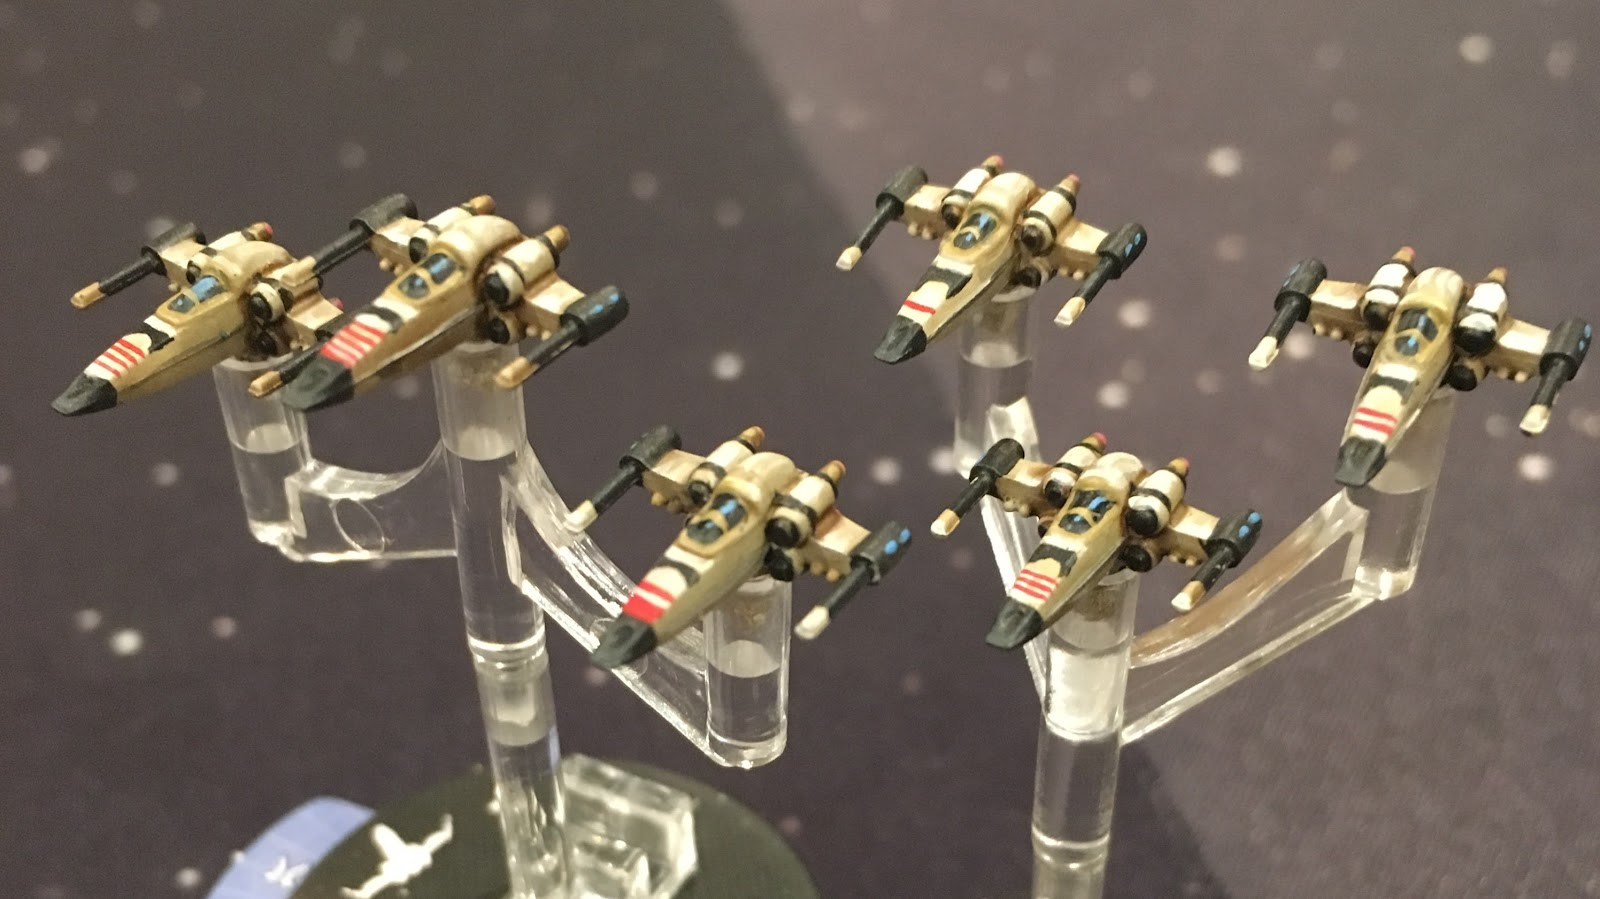 After a cursory search I picked a style that would help distinguish these Z-95s from my Red Squadron X-wings, but wouldn't look too out of place in service ...